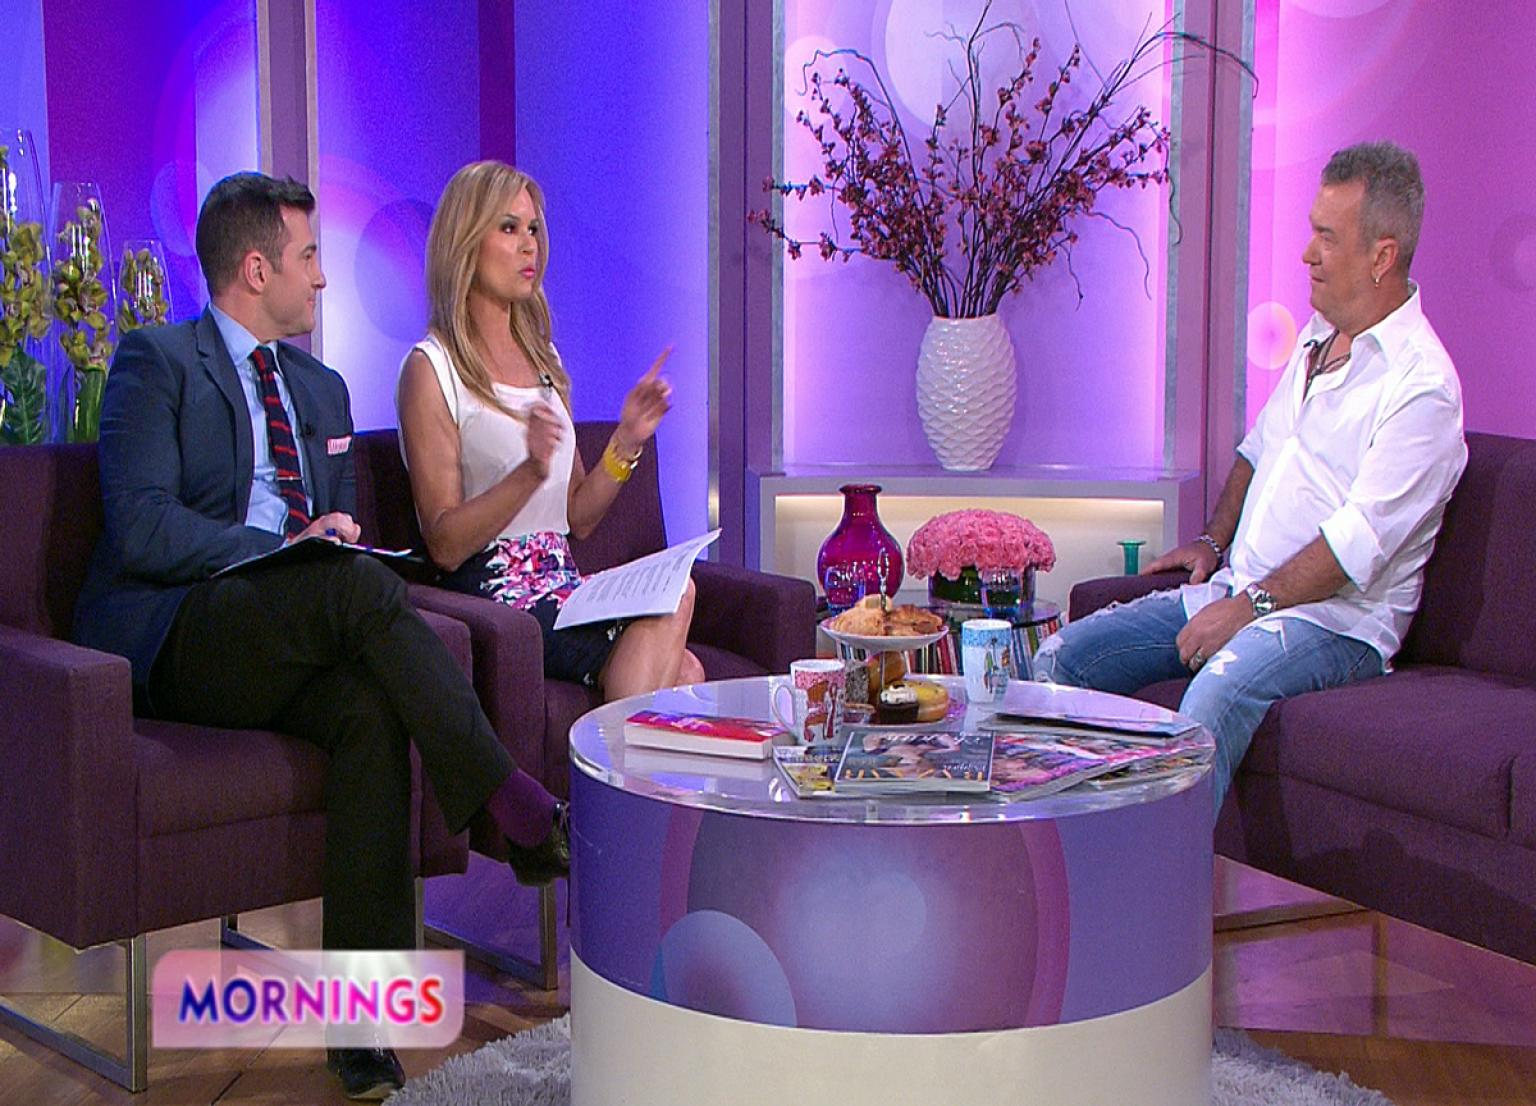 Studio seting with pink and purple background. TV show hosts David Campbell and Sonia Kruger sit on the left in chairs. Jimmy Barnes is on the right on a couch. A round coffee table is in front and vases of various shapes and sizes are in the background.